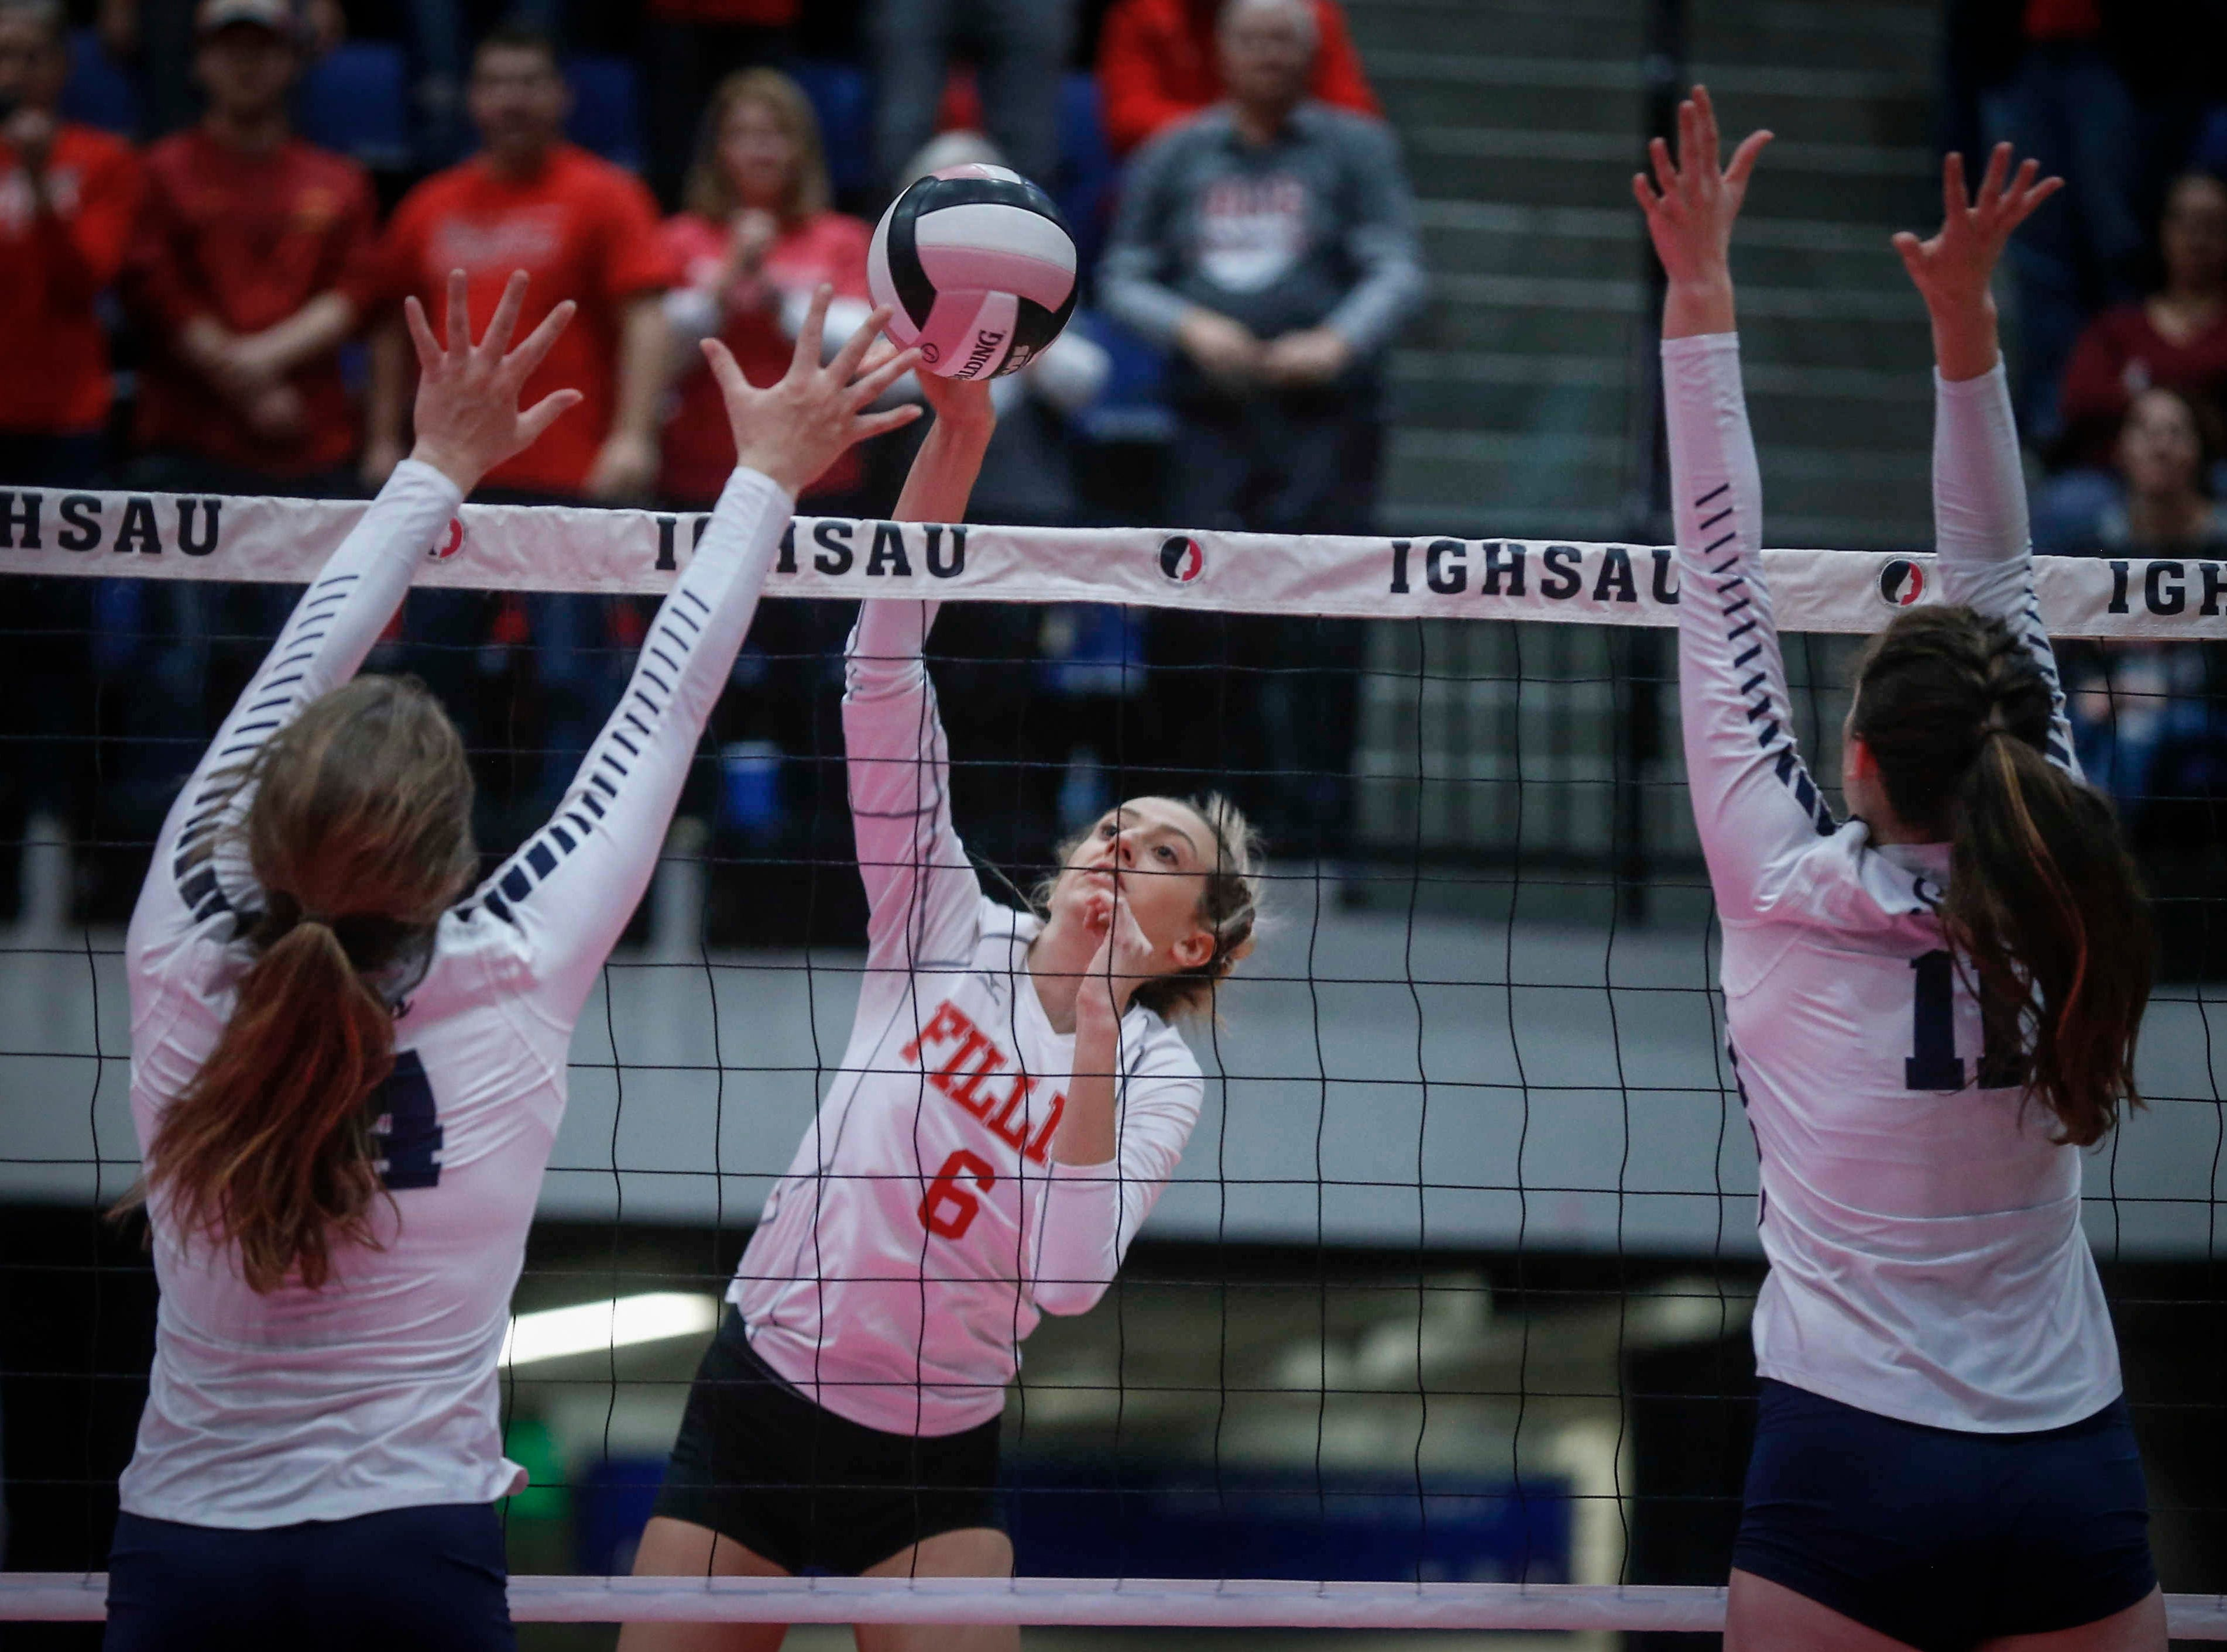 Dallas Center-Grimes senior Hannah Ashley knocks the ball over the net against Cedar Rapids Xavier in Class 4A during the 2018 Iowa High School state volleyball tournament on Thursday, Nov. 8, 2018, in Cedar Rapids.